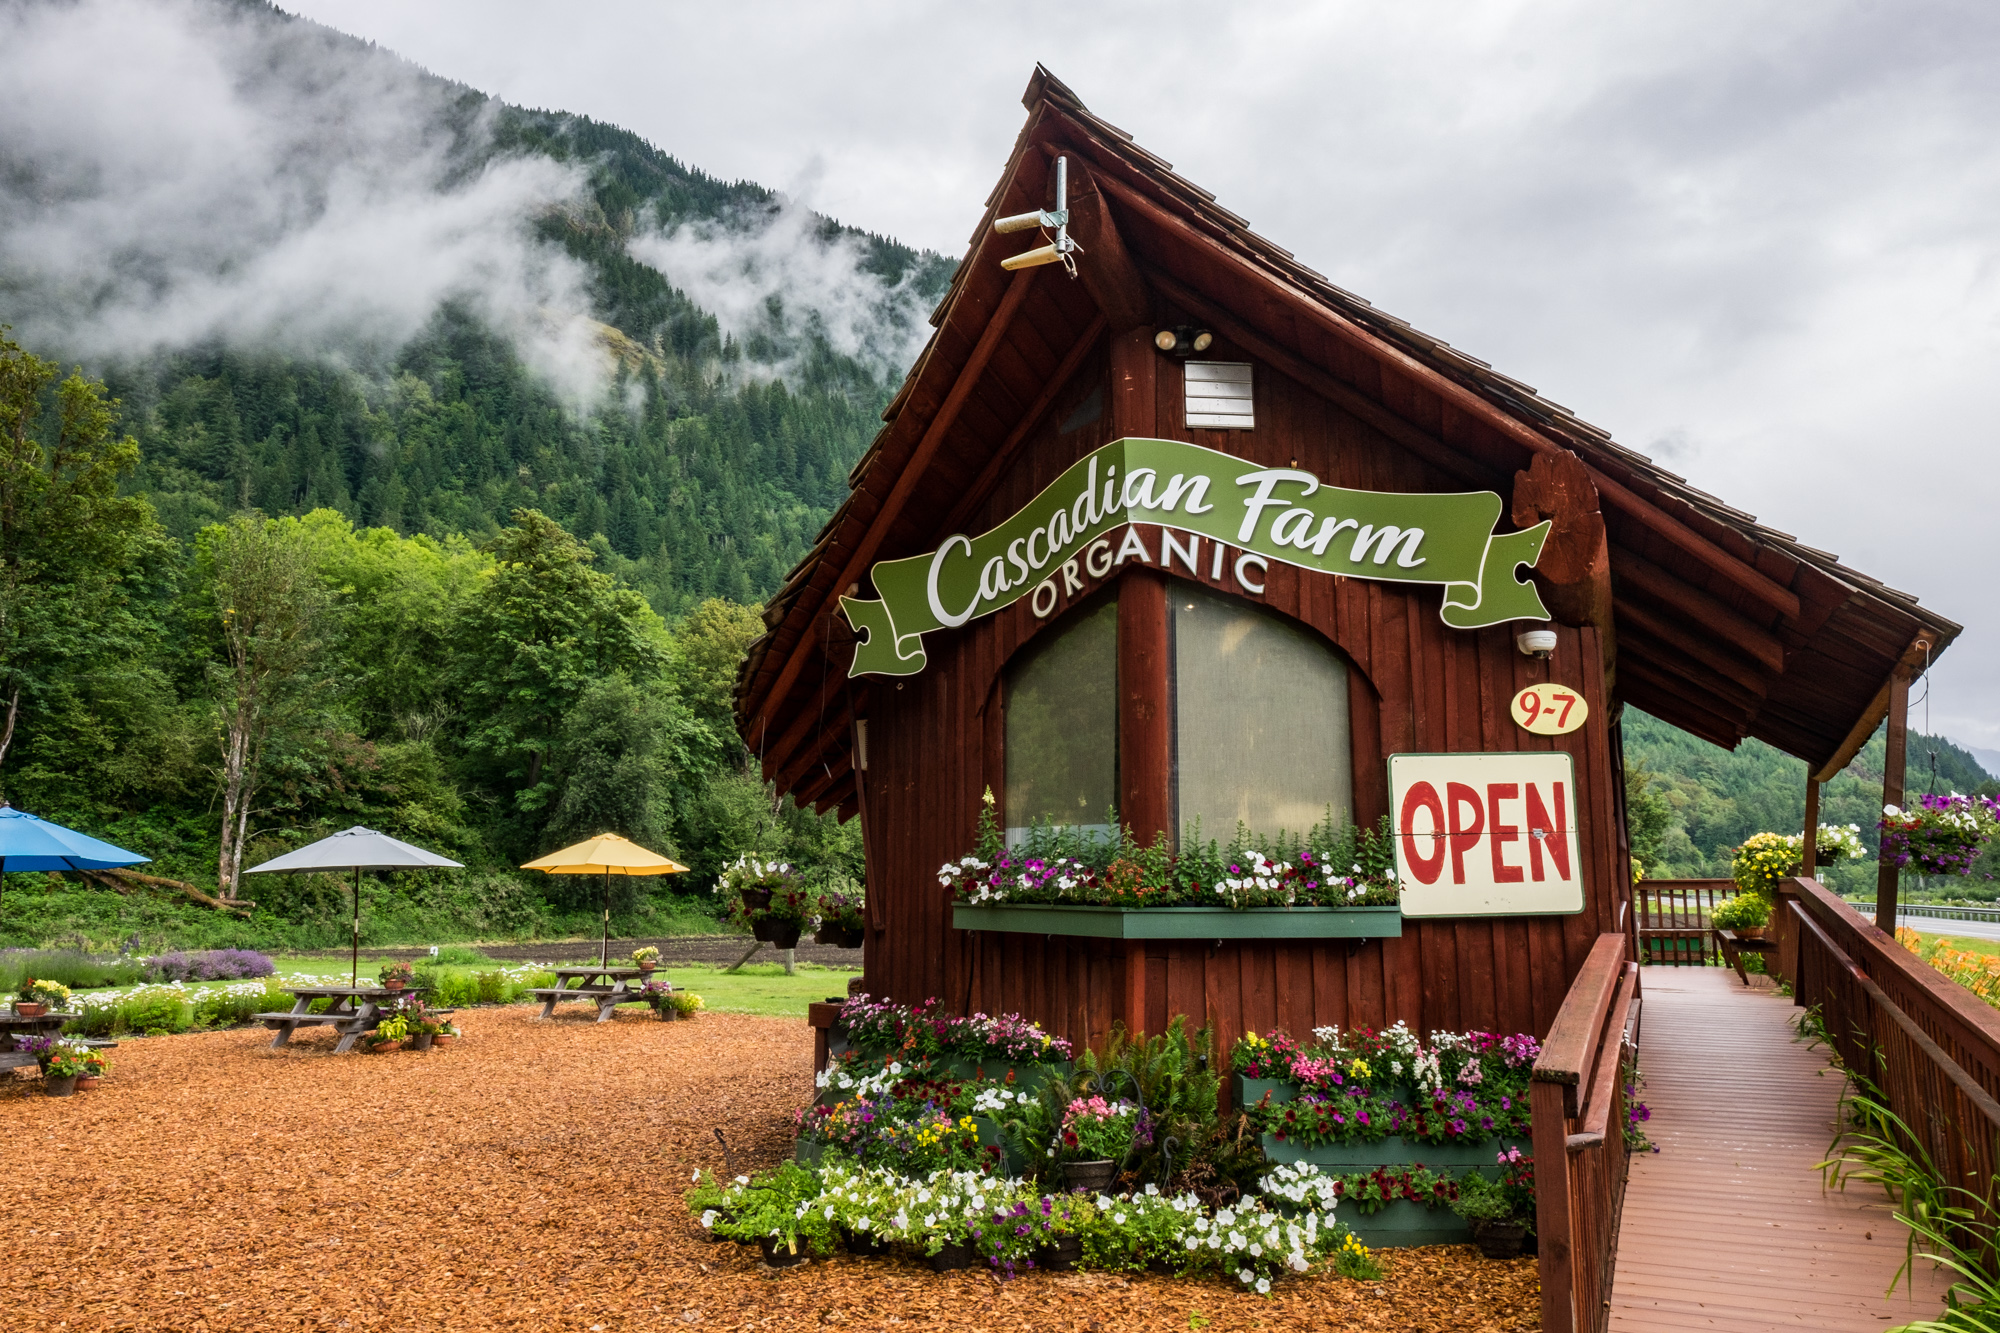 Hit the farms in the area to savor what Washington State is known for: perfect organic produce direct from the source.